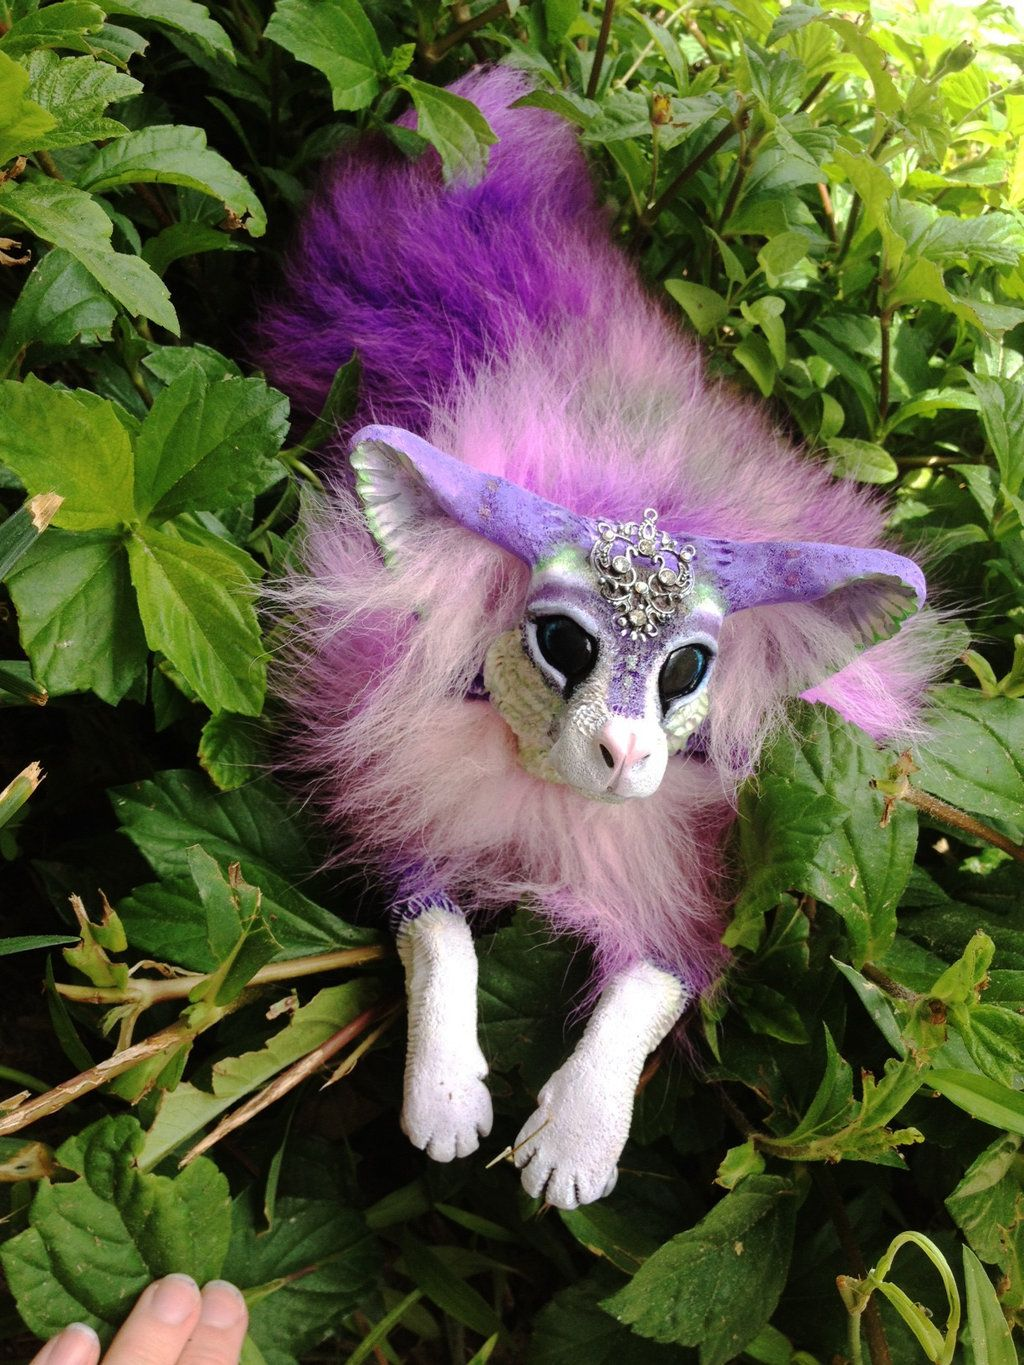 Baby inari fox for sale - Sold Poseable Hand Made Moondust Bear By Wood Splitter Lee On Baby Foxeshandmade